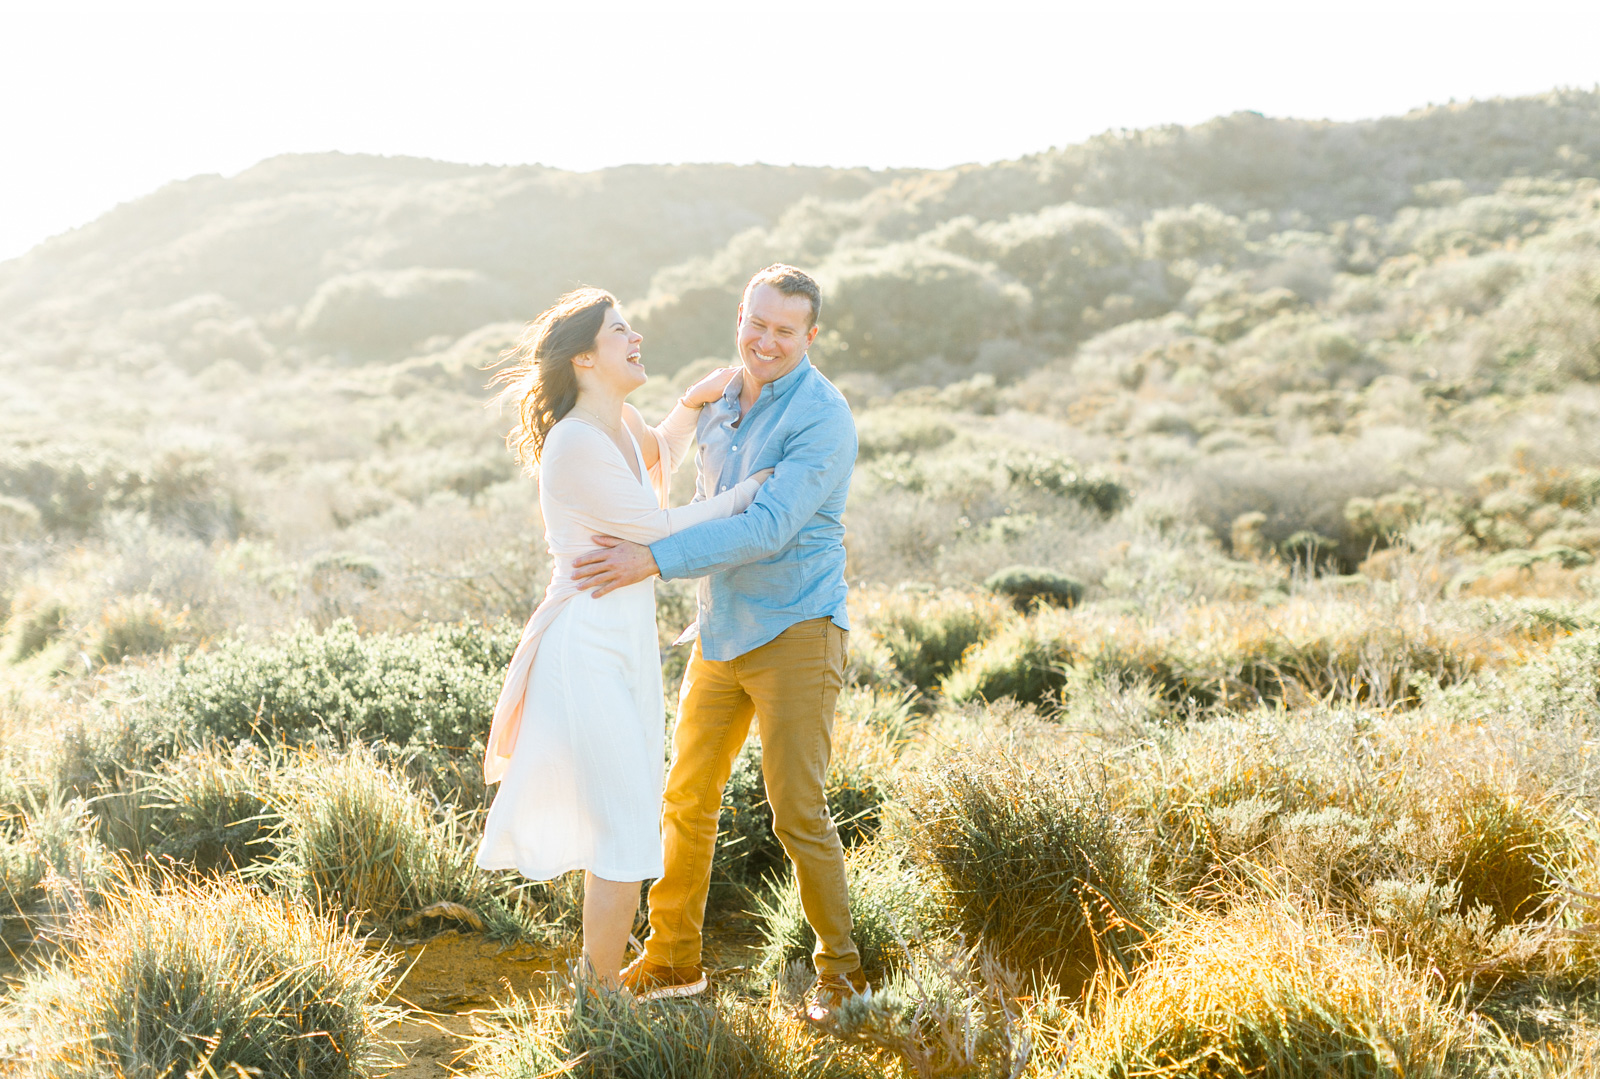 Professional-Wedding-Photographer-Southern-California-Weddings-Malibu-Engagement-Natalie-Schutt-Photography-Style-Me-Pretty-Beachside-Engagement_02.jpg